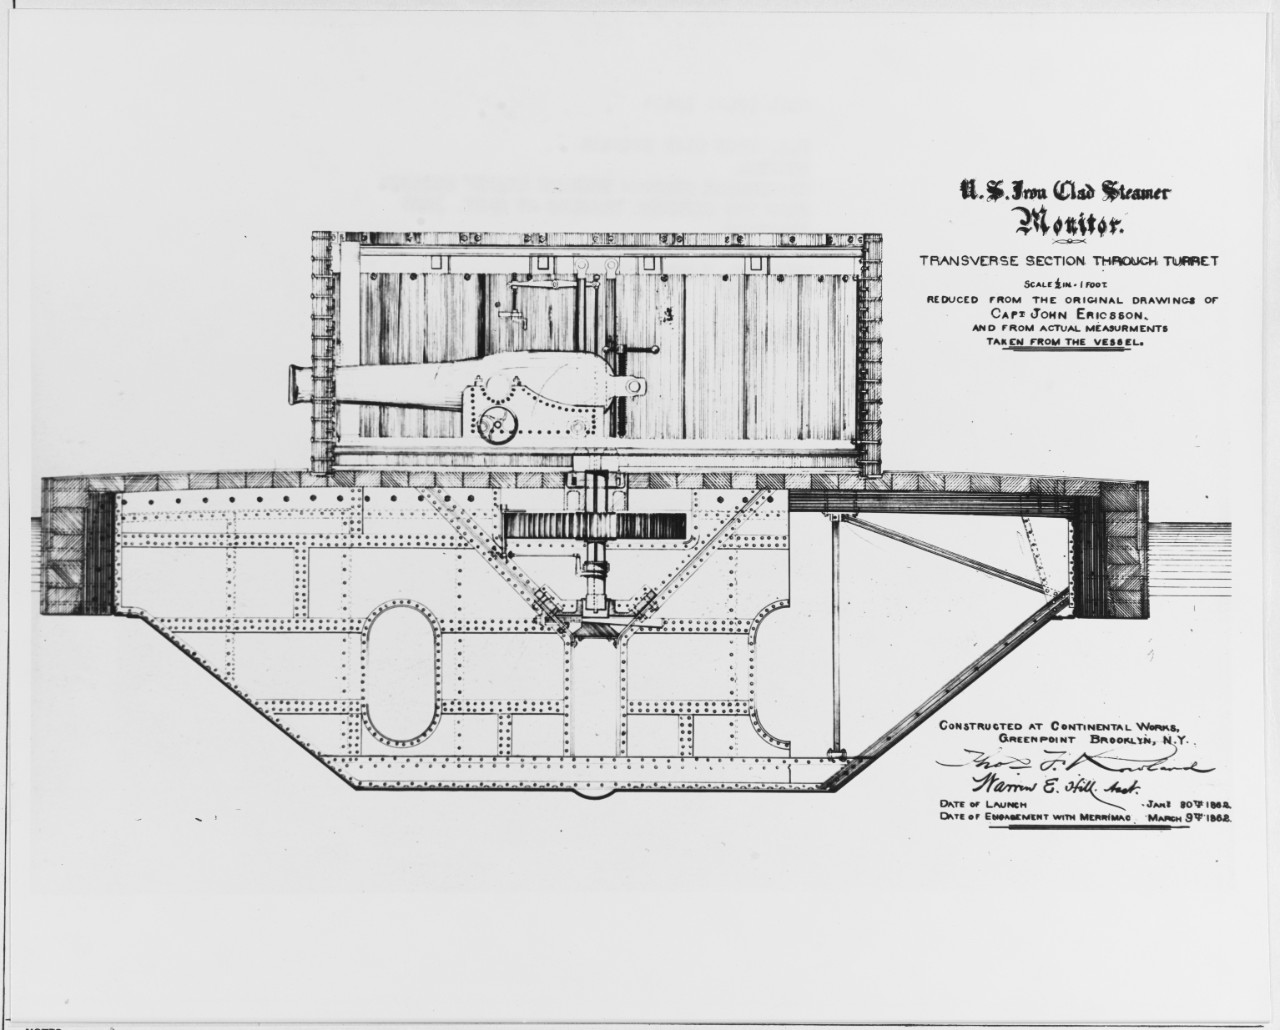 Cutaway Diagram Of The Uss Monitor Uss Monitor Was Innovative